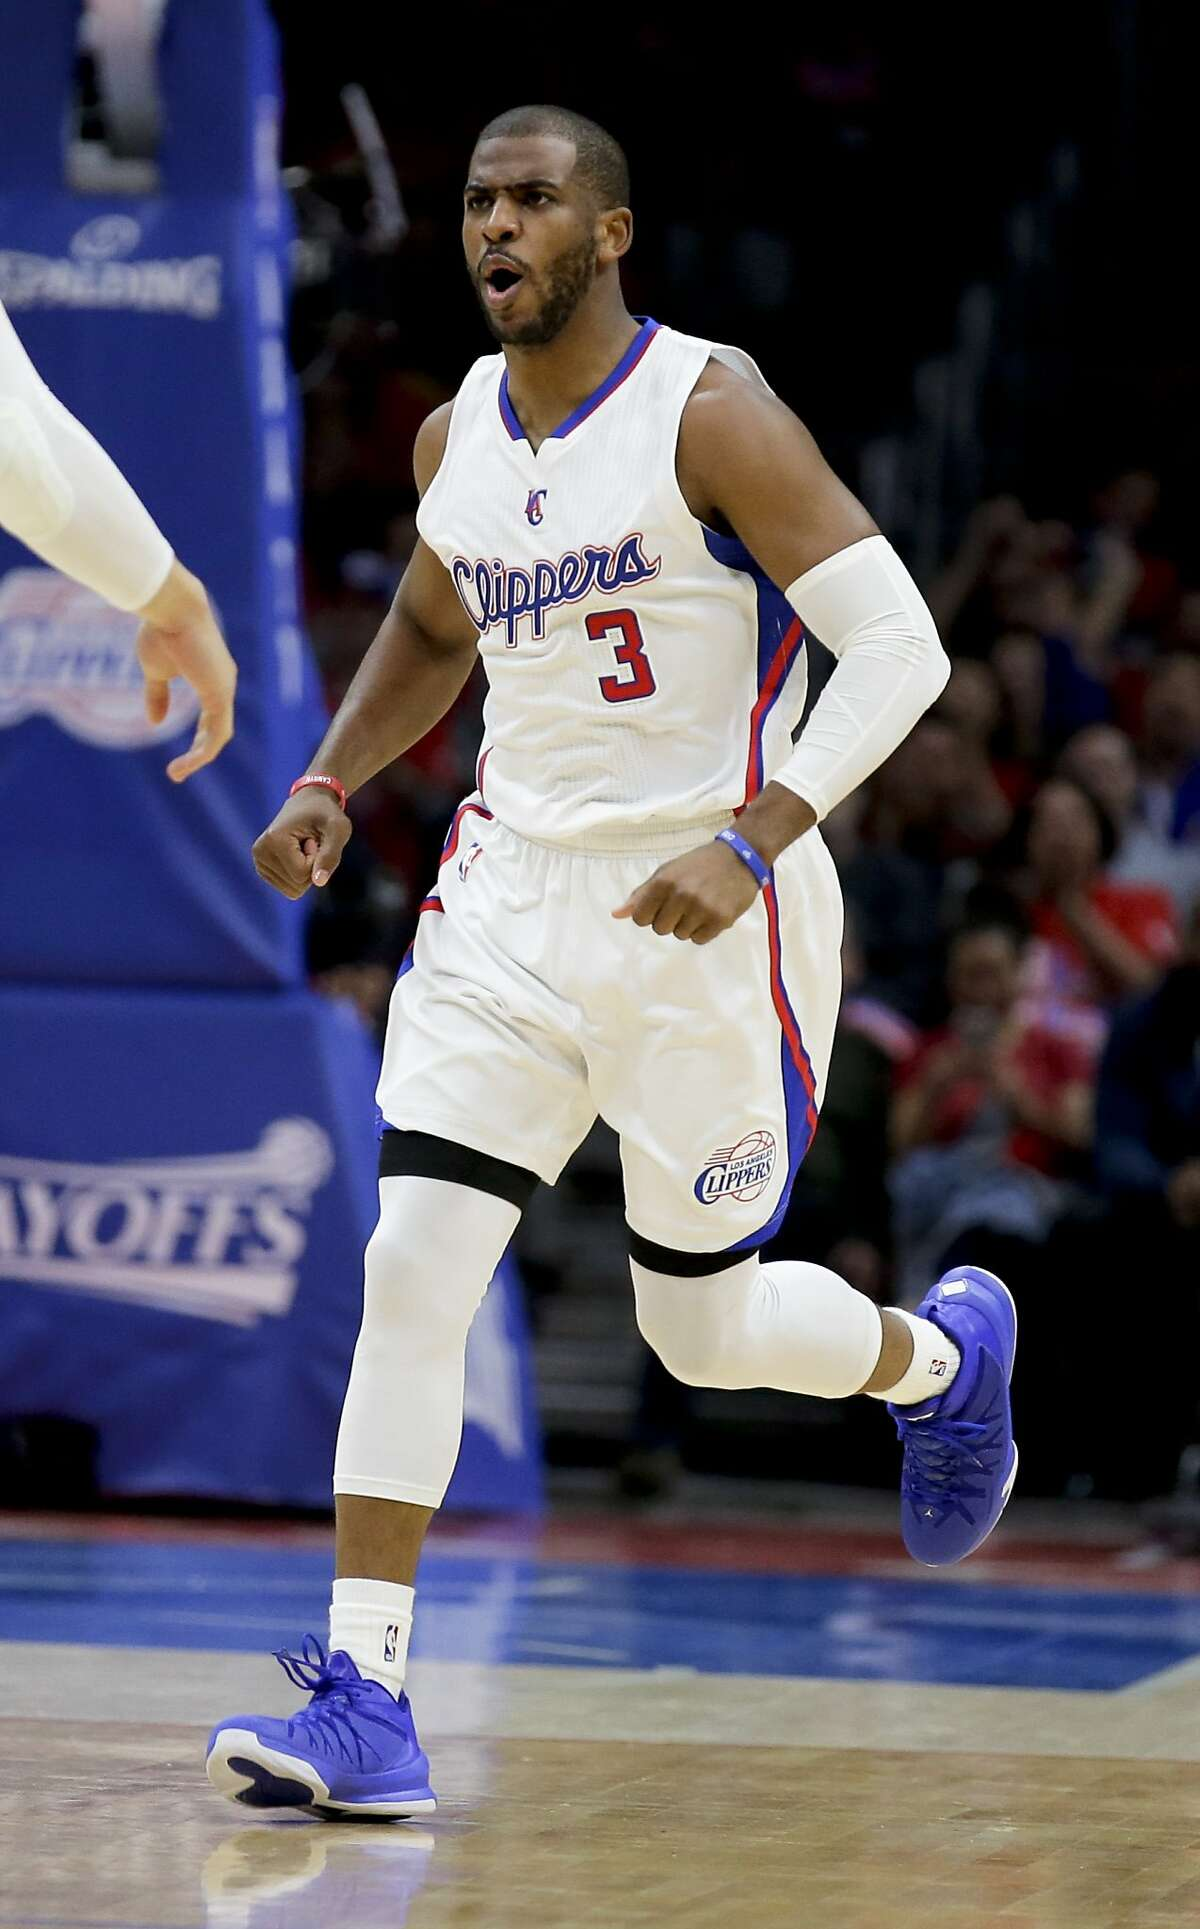 Los Angeles Clippers guard Chris Paul celebrates during Game 2 of a first-round NBA basketball playoff series against the San Antonio Spurs in Los Angeles, Thursday, April 23, 2015. The Spurs won 111-107 in overtime. (AP Photo/Chris Carlson)